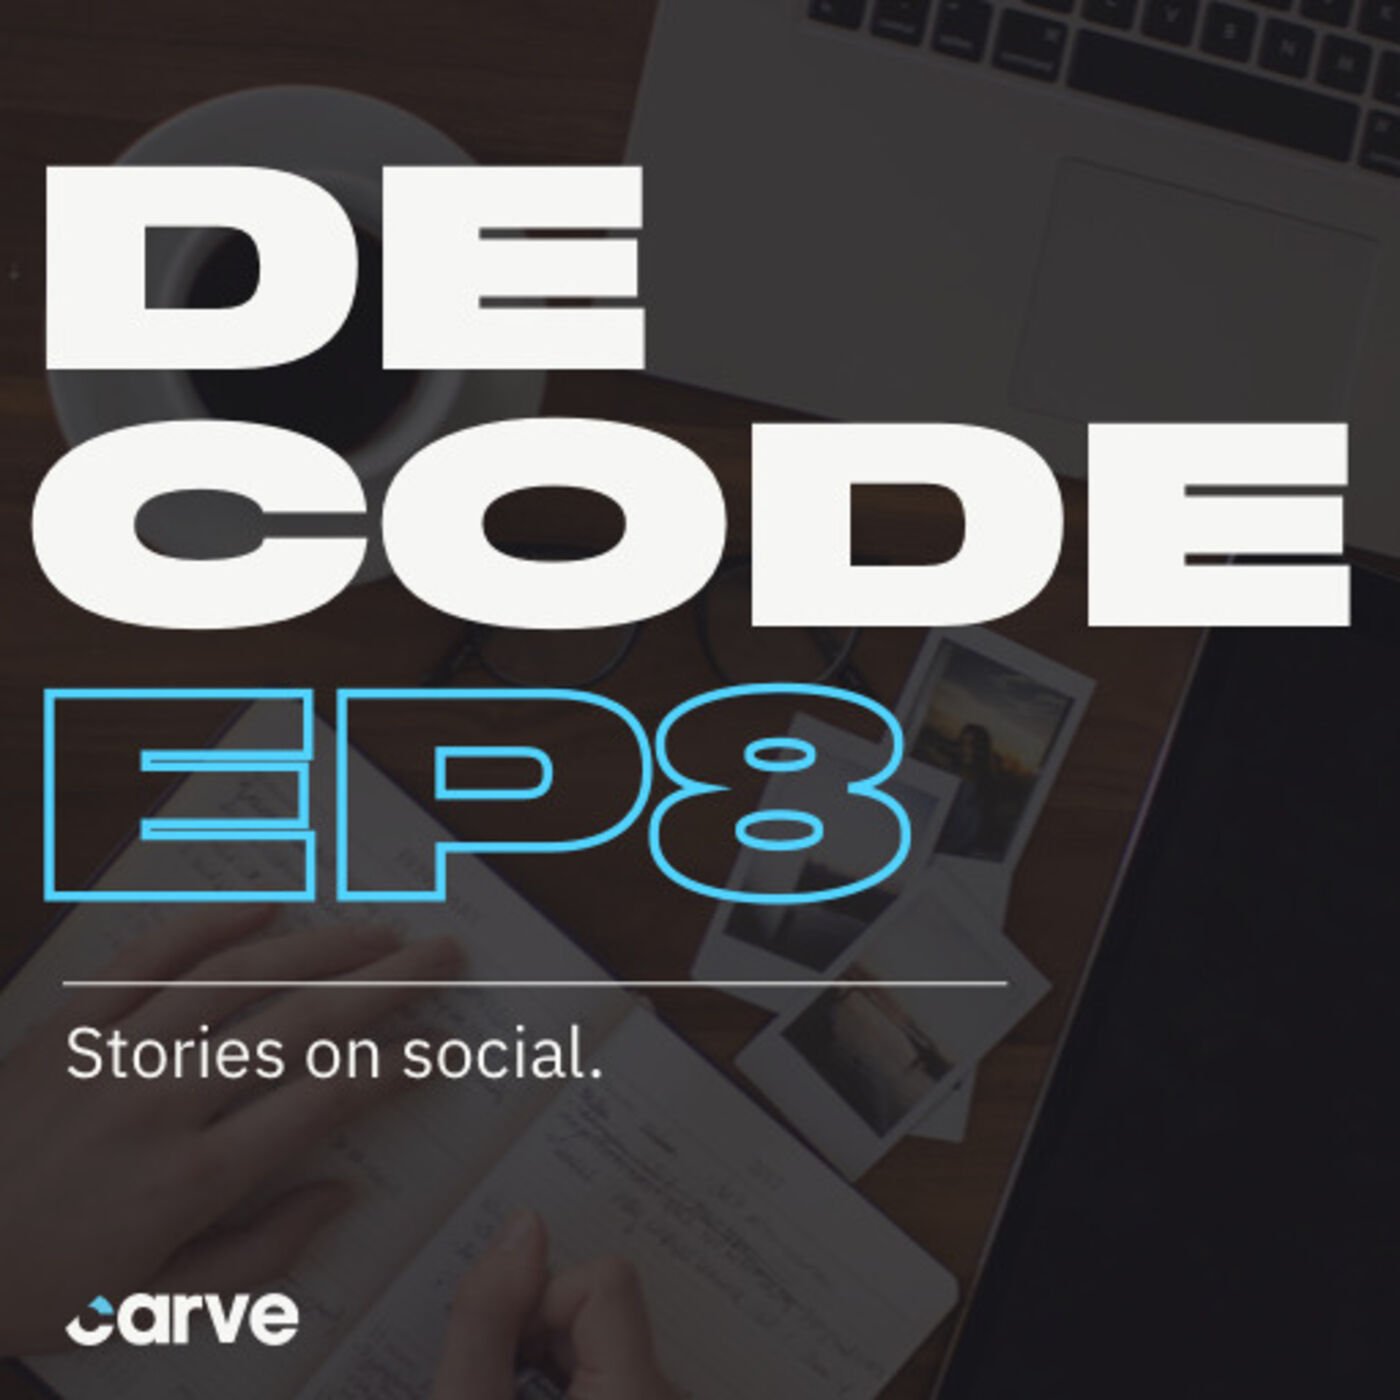 Stories on social